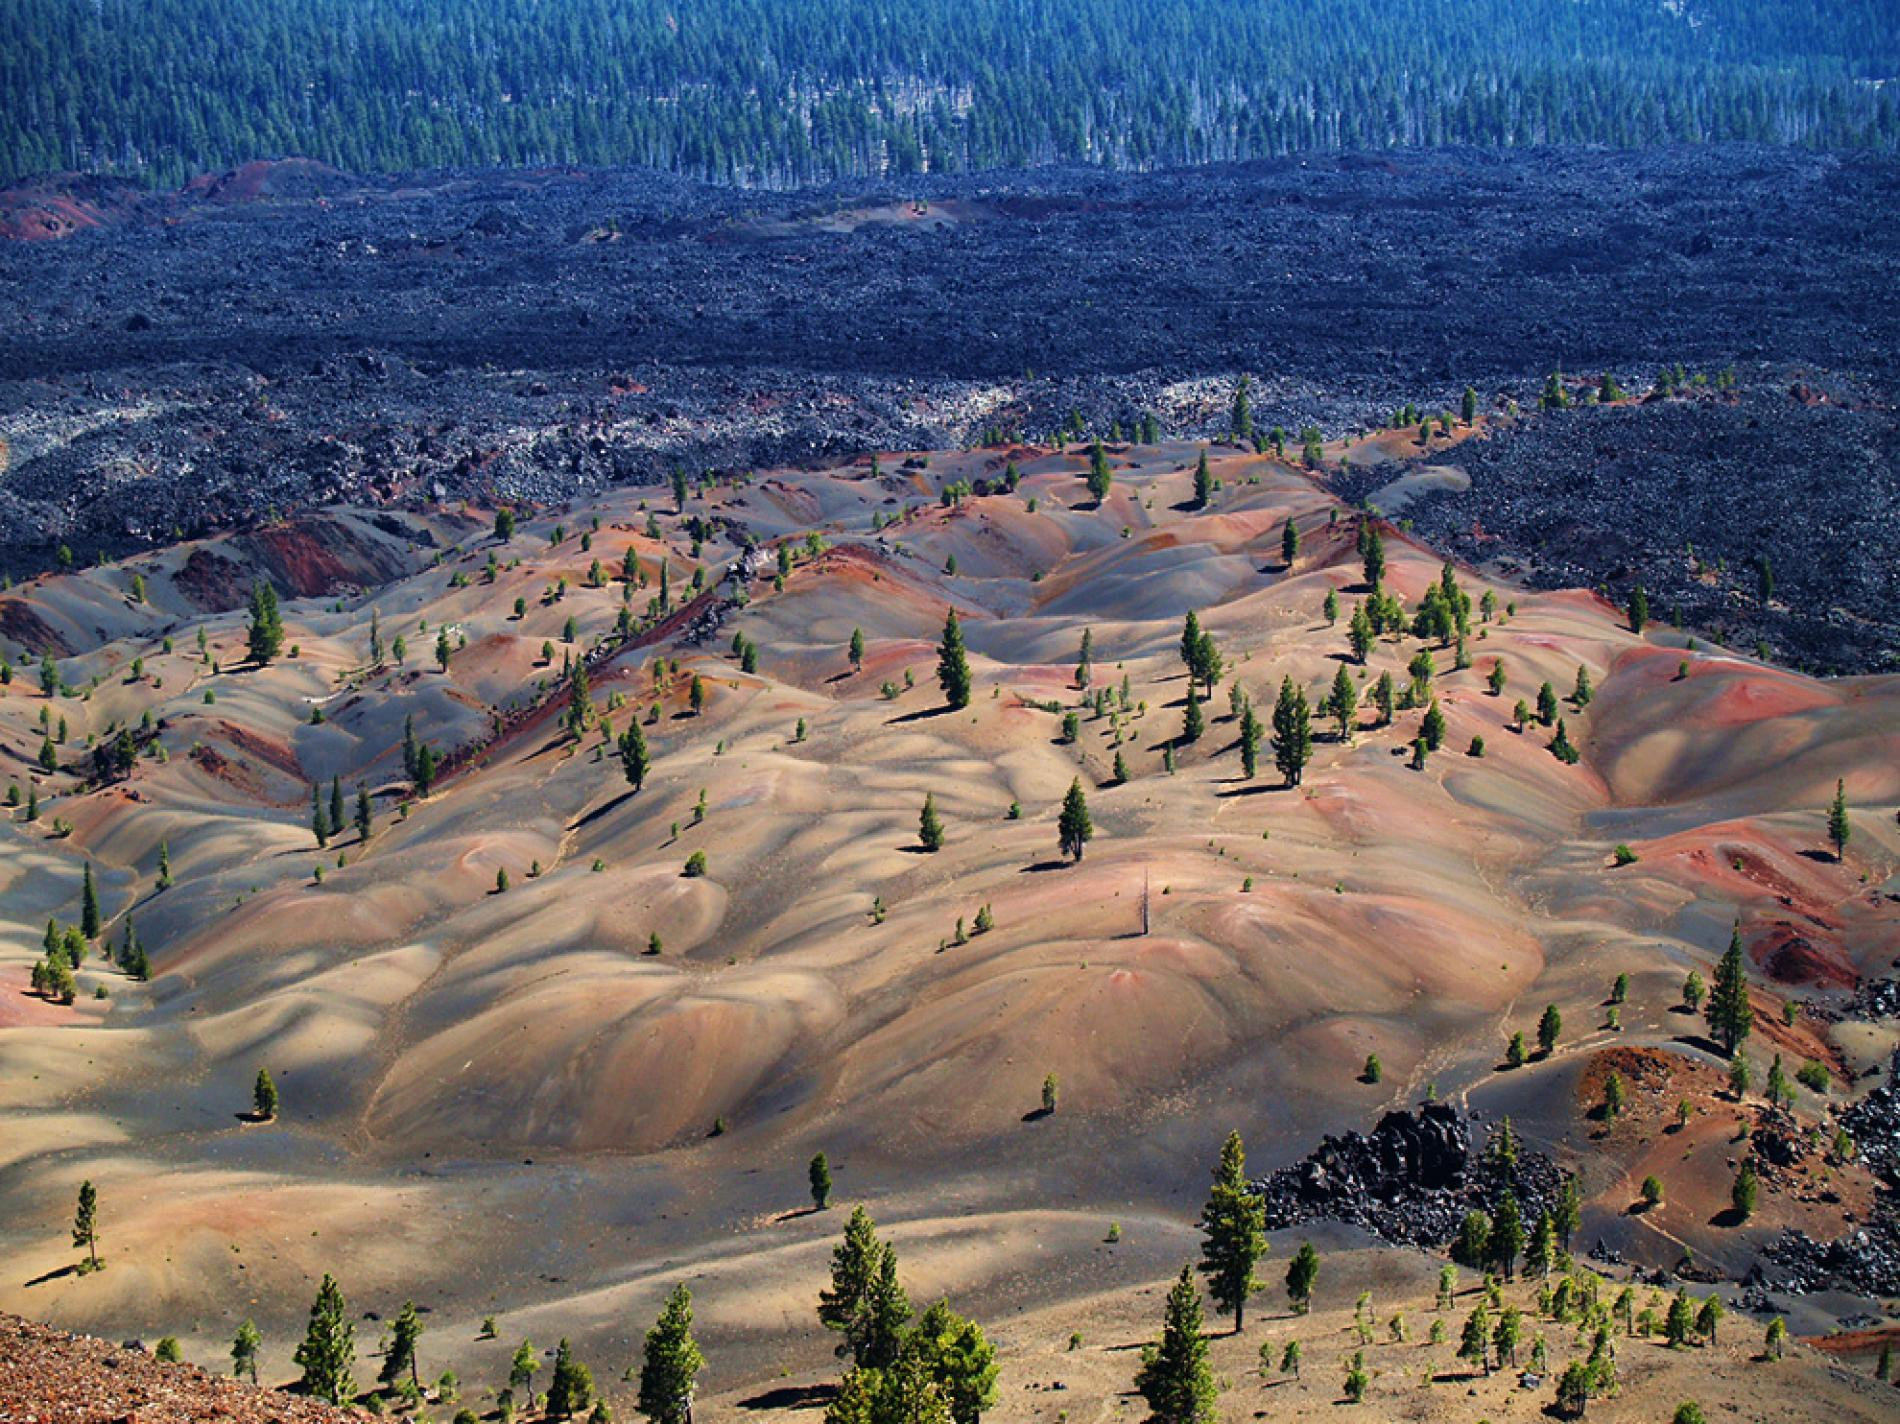 lassen-national-park-in-northern-california-is-one-of-th-secret-world